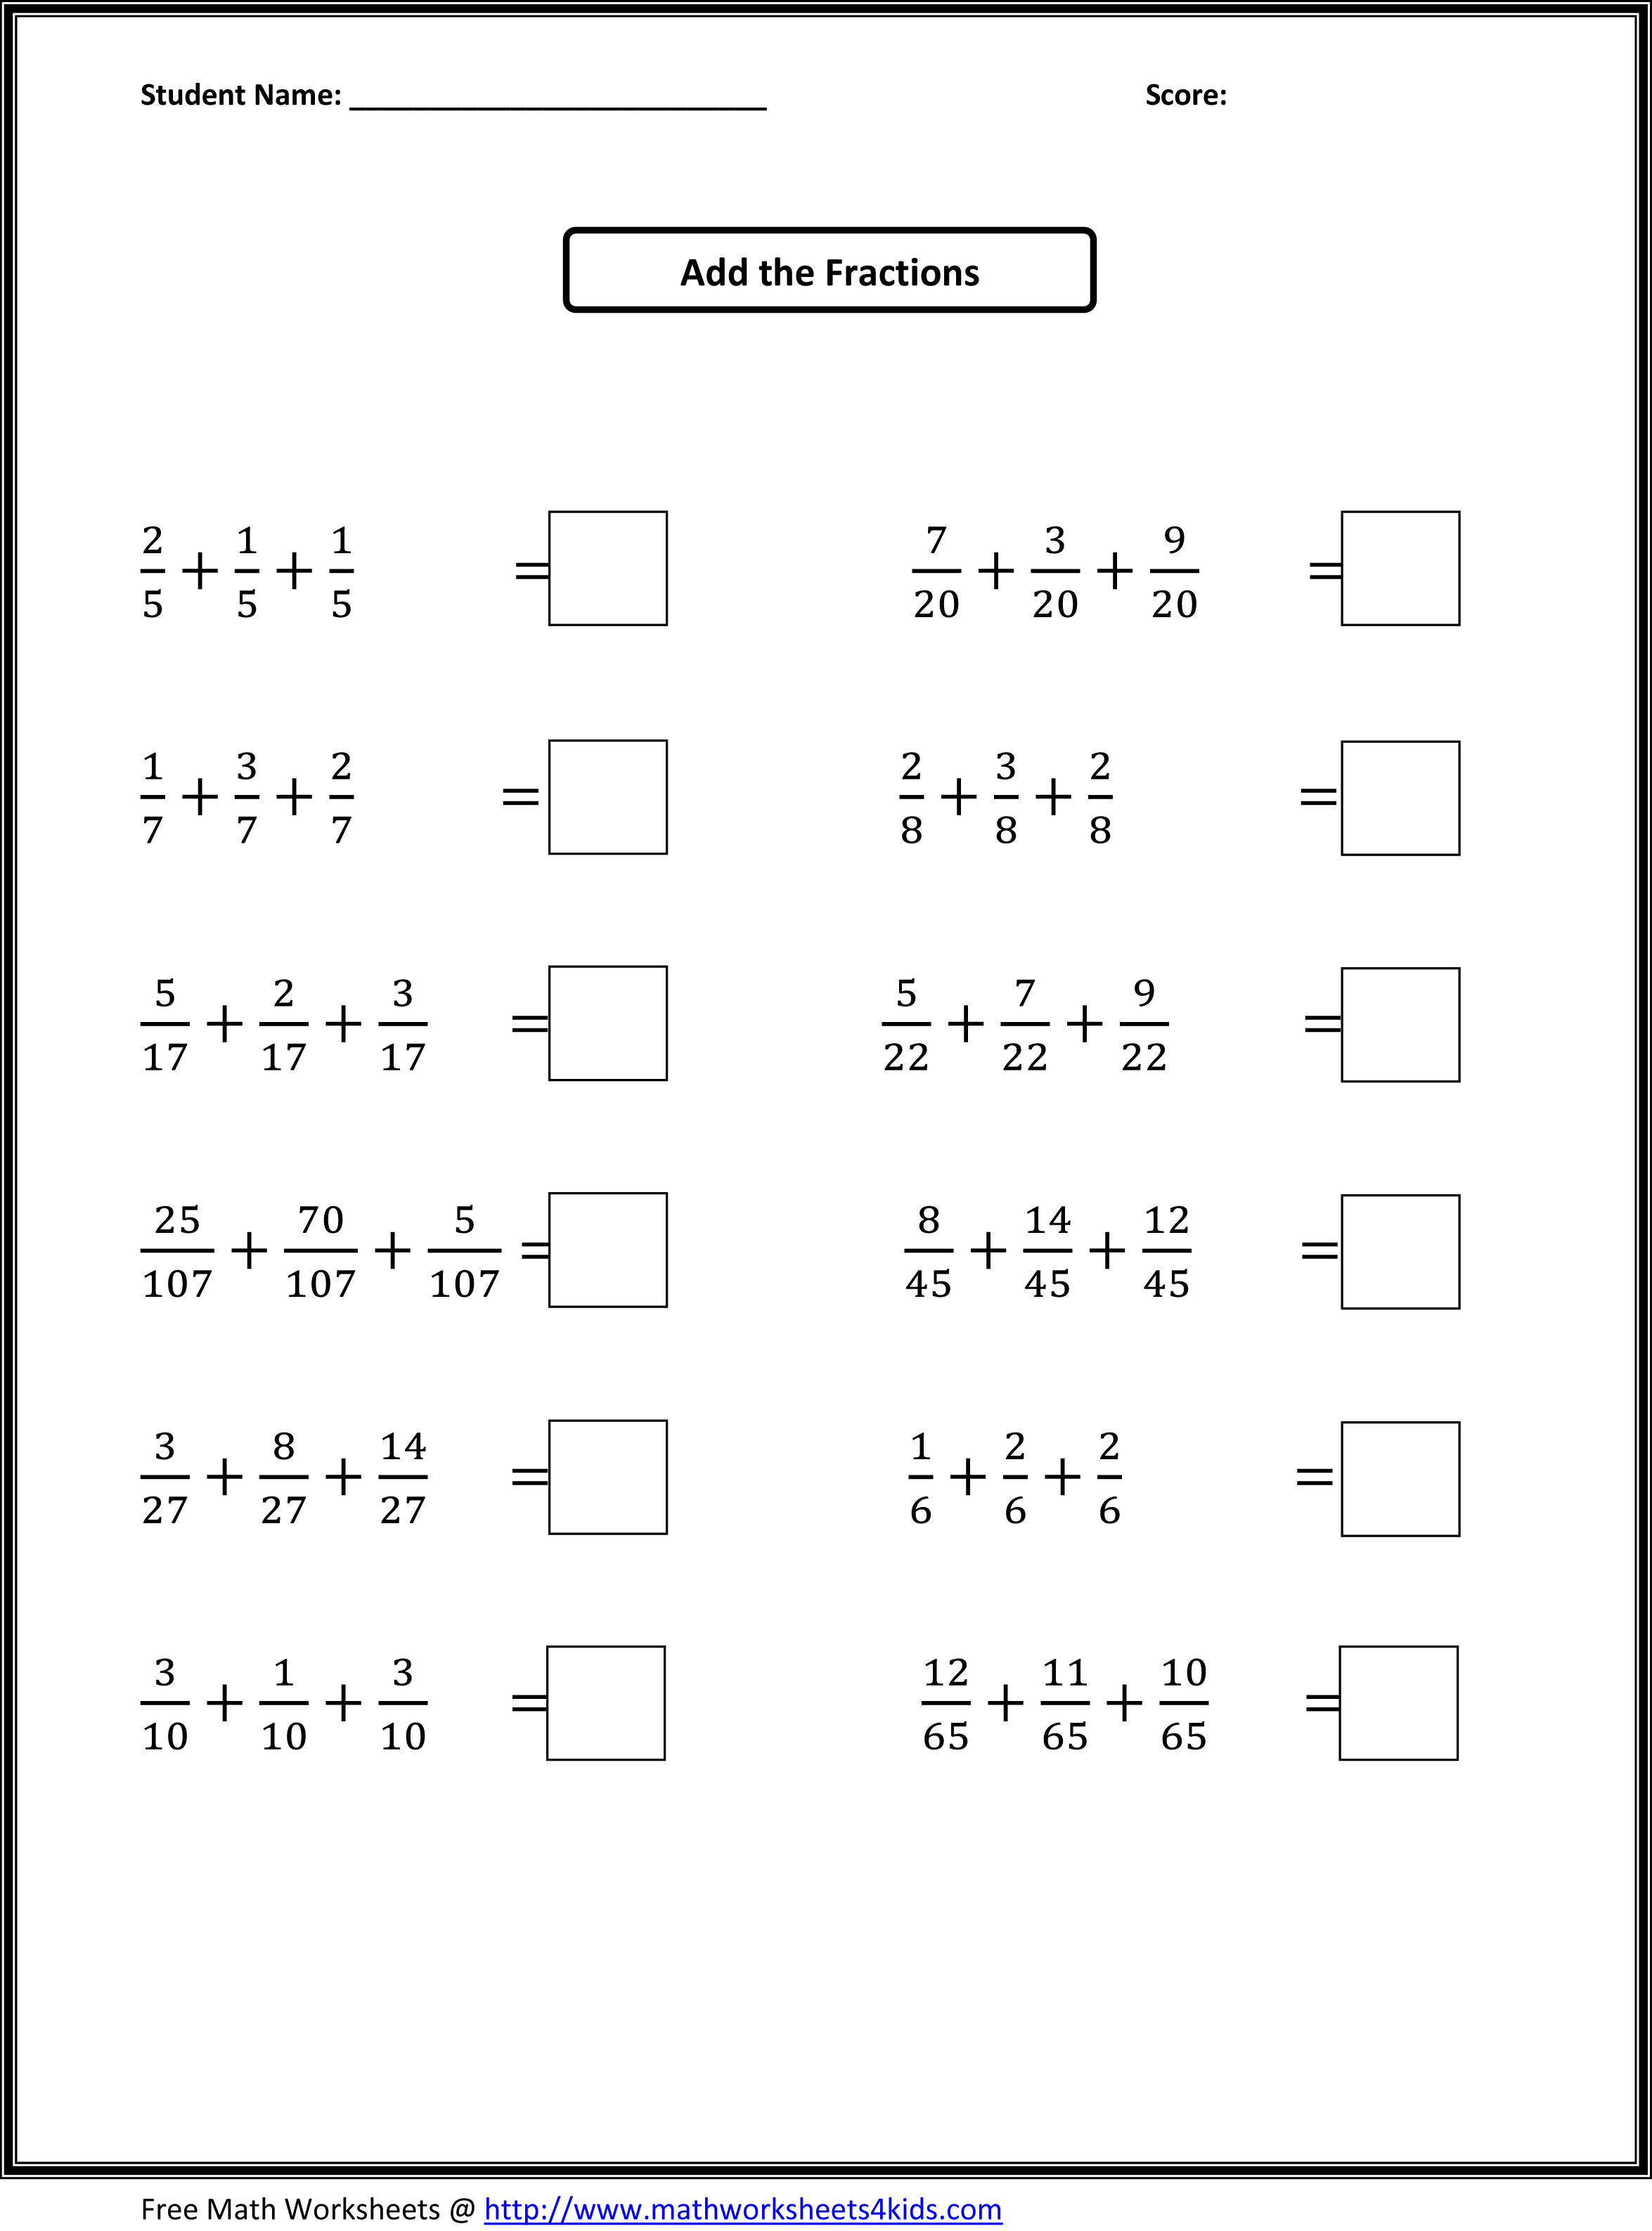 Maths Worksheets On Fractions For Grade 5 Worksheet Kids – Fractions Worksheets Grade 4